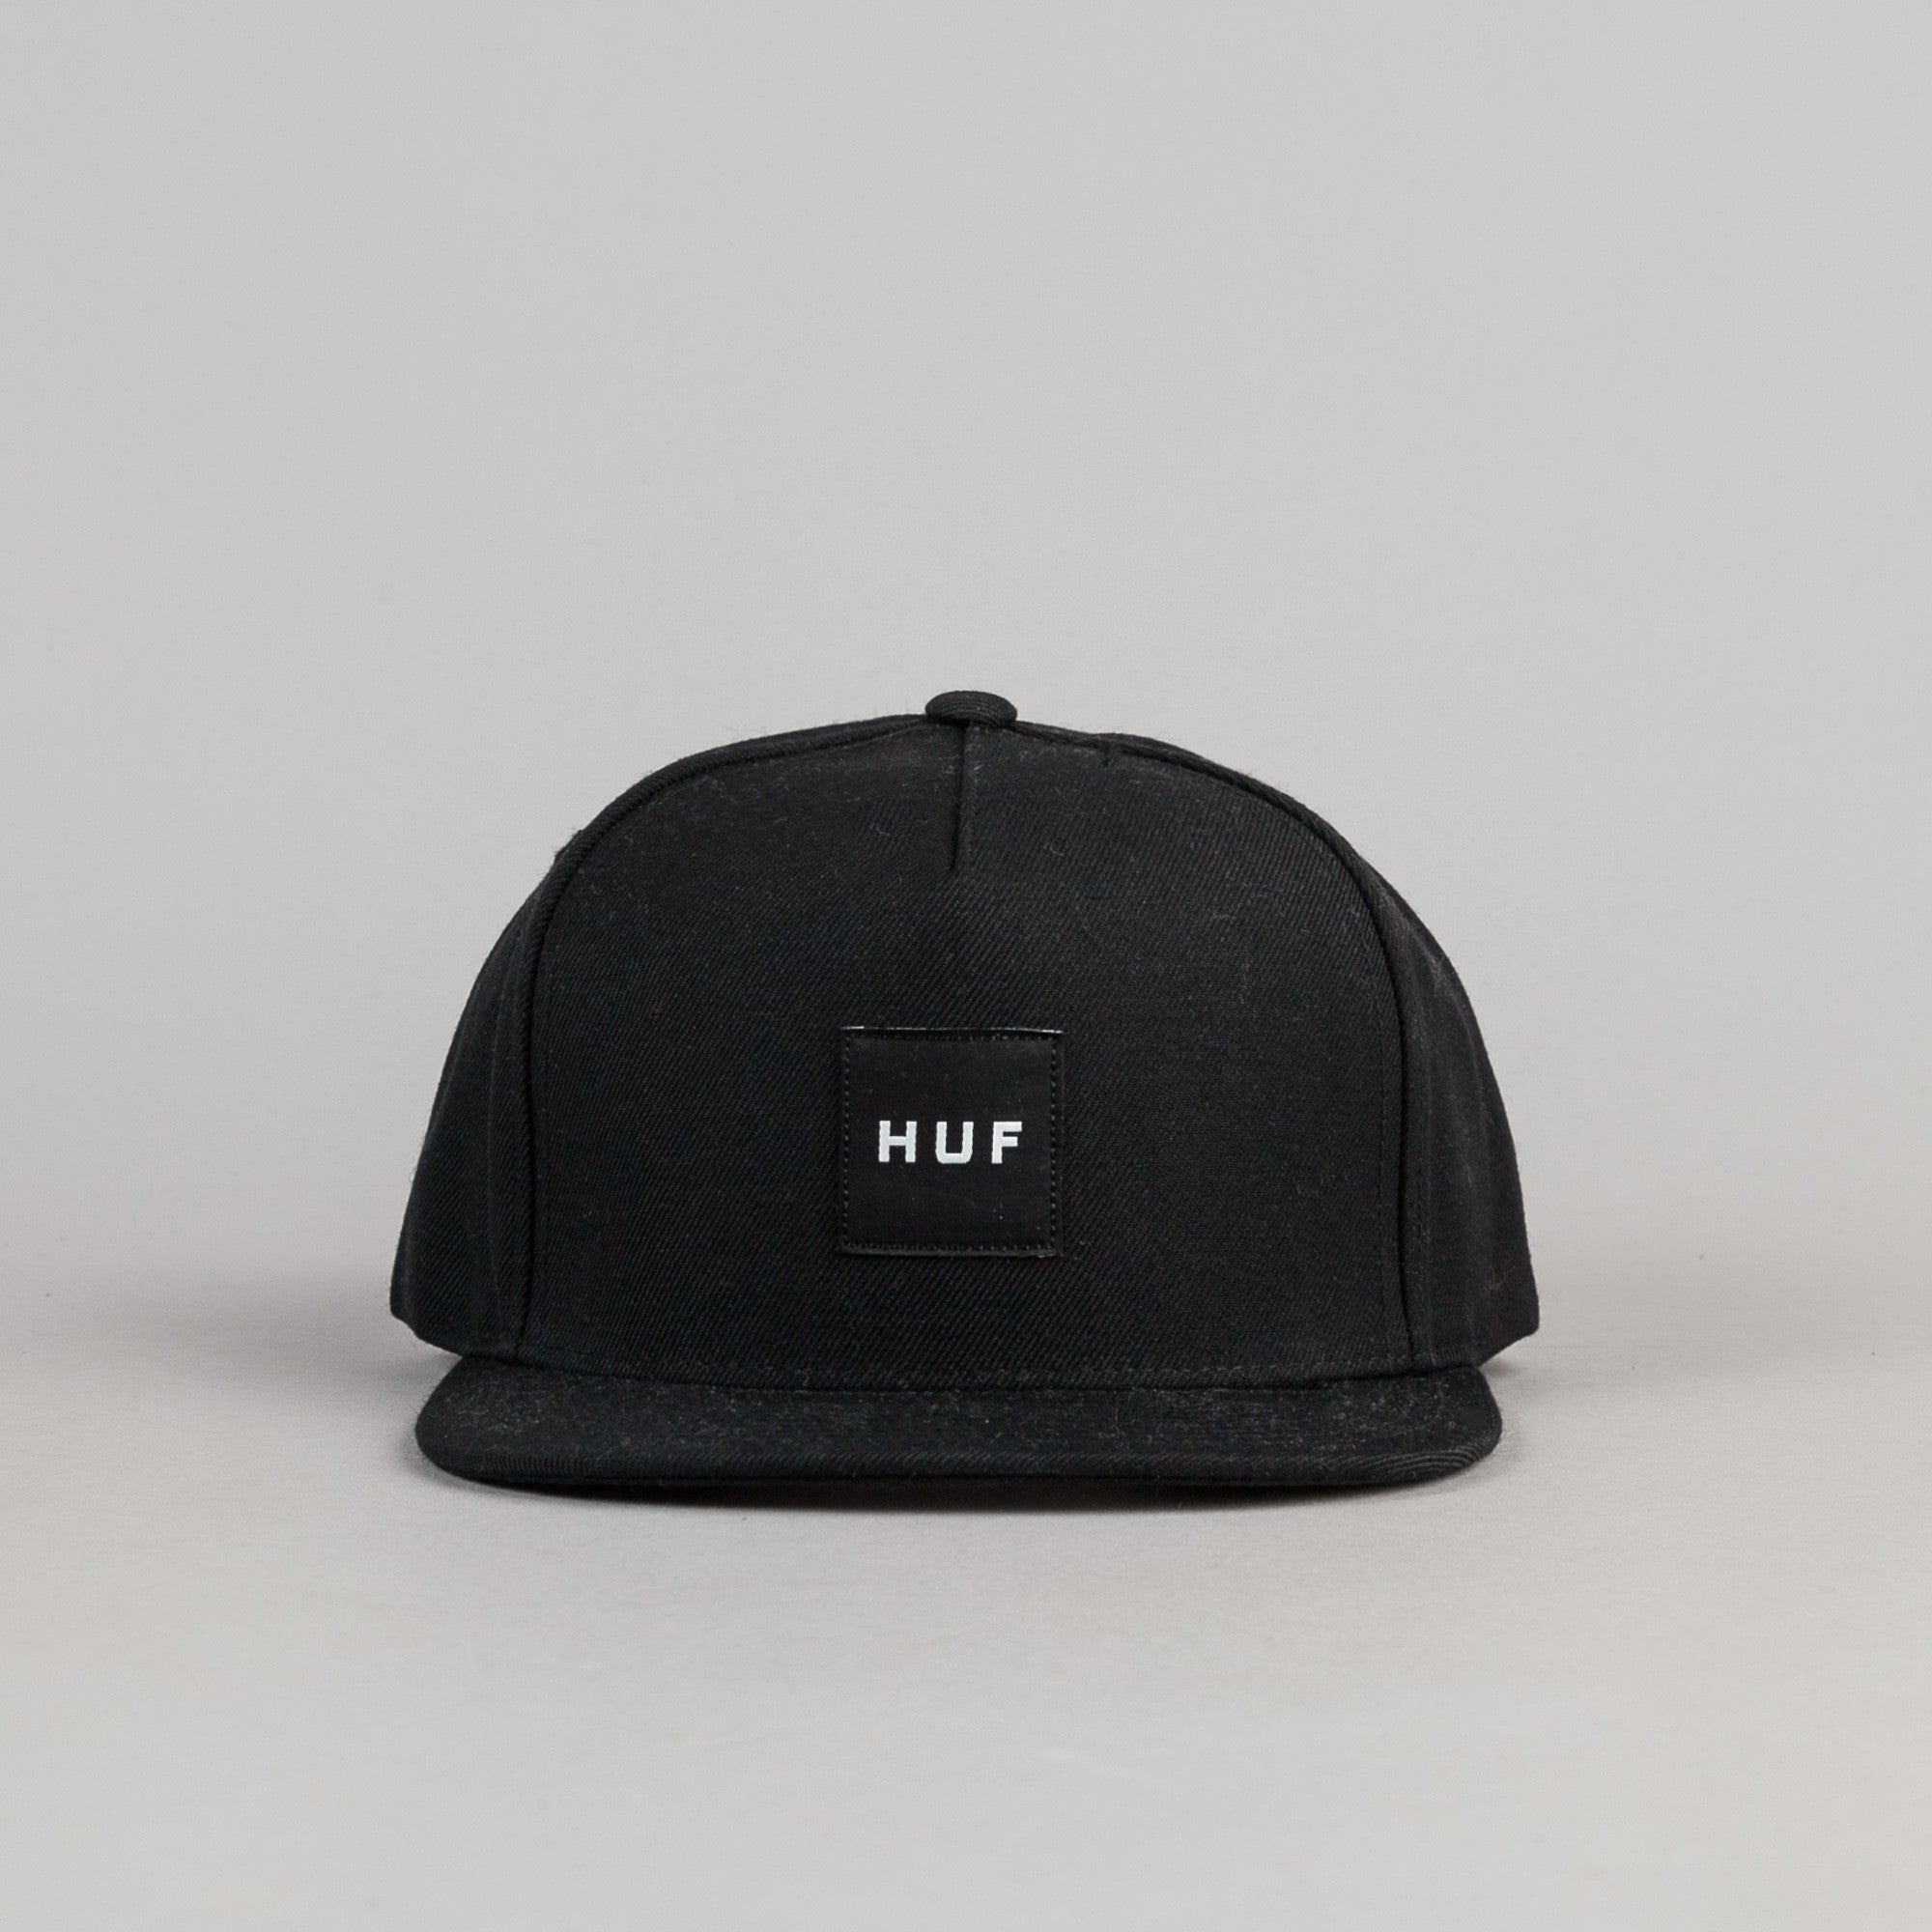 HUF Unstructured Box Logo Snapback Cap - Black